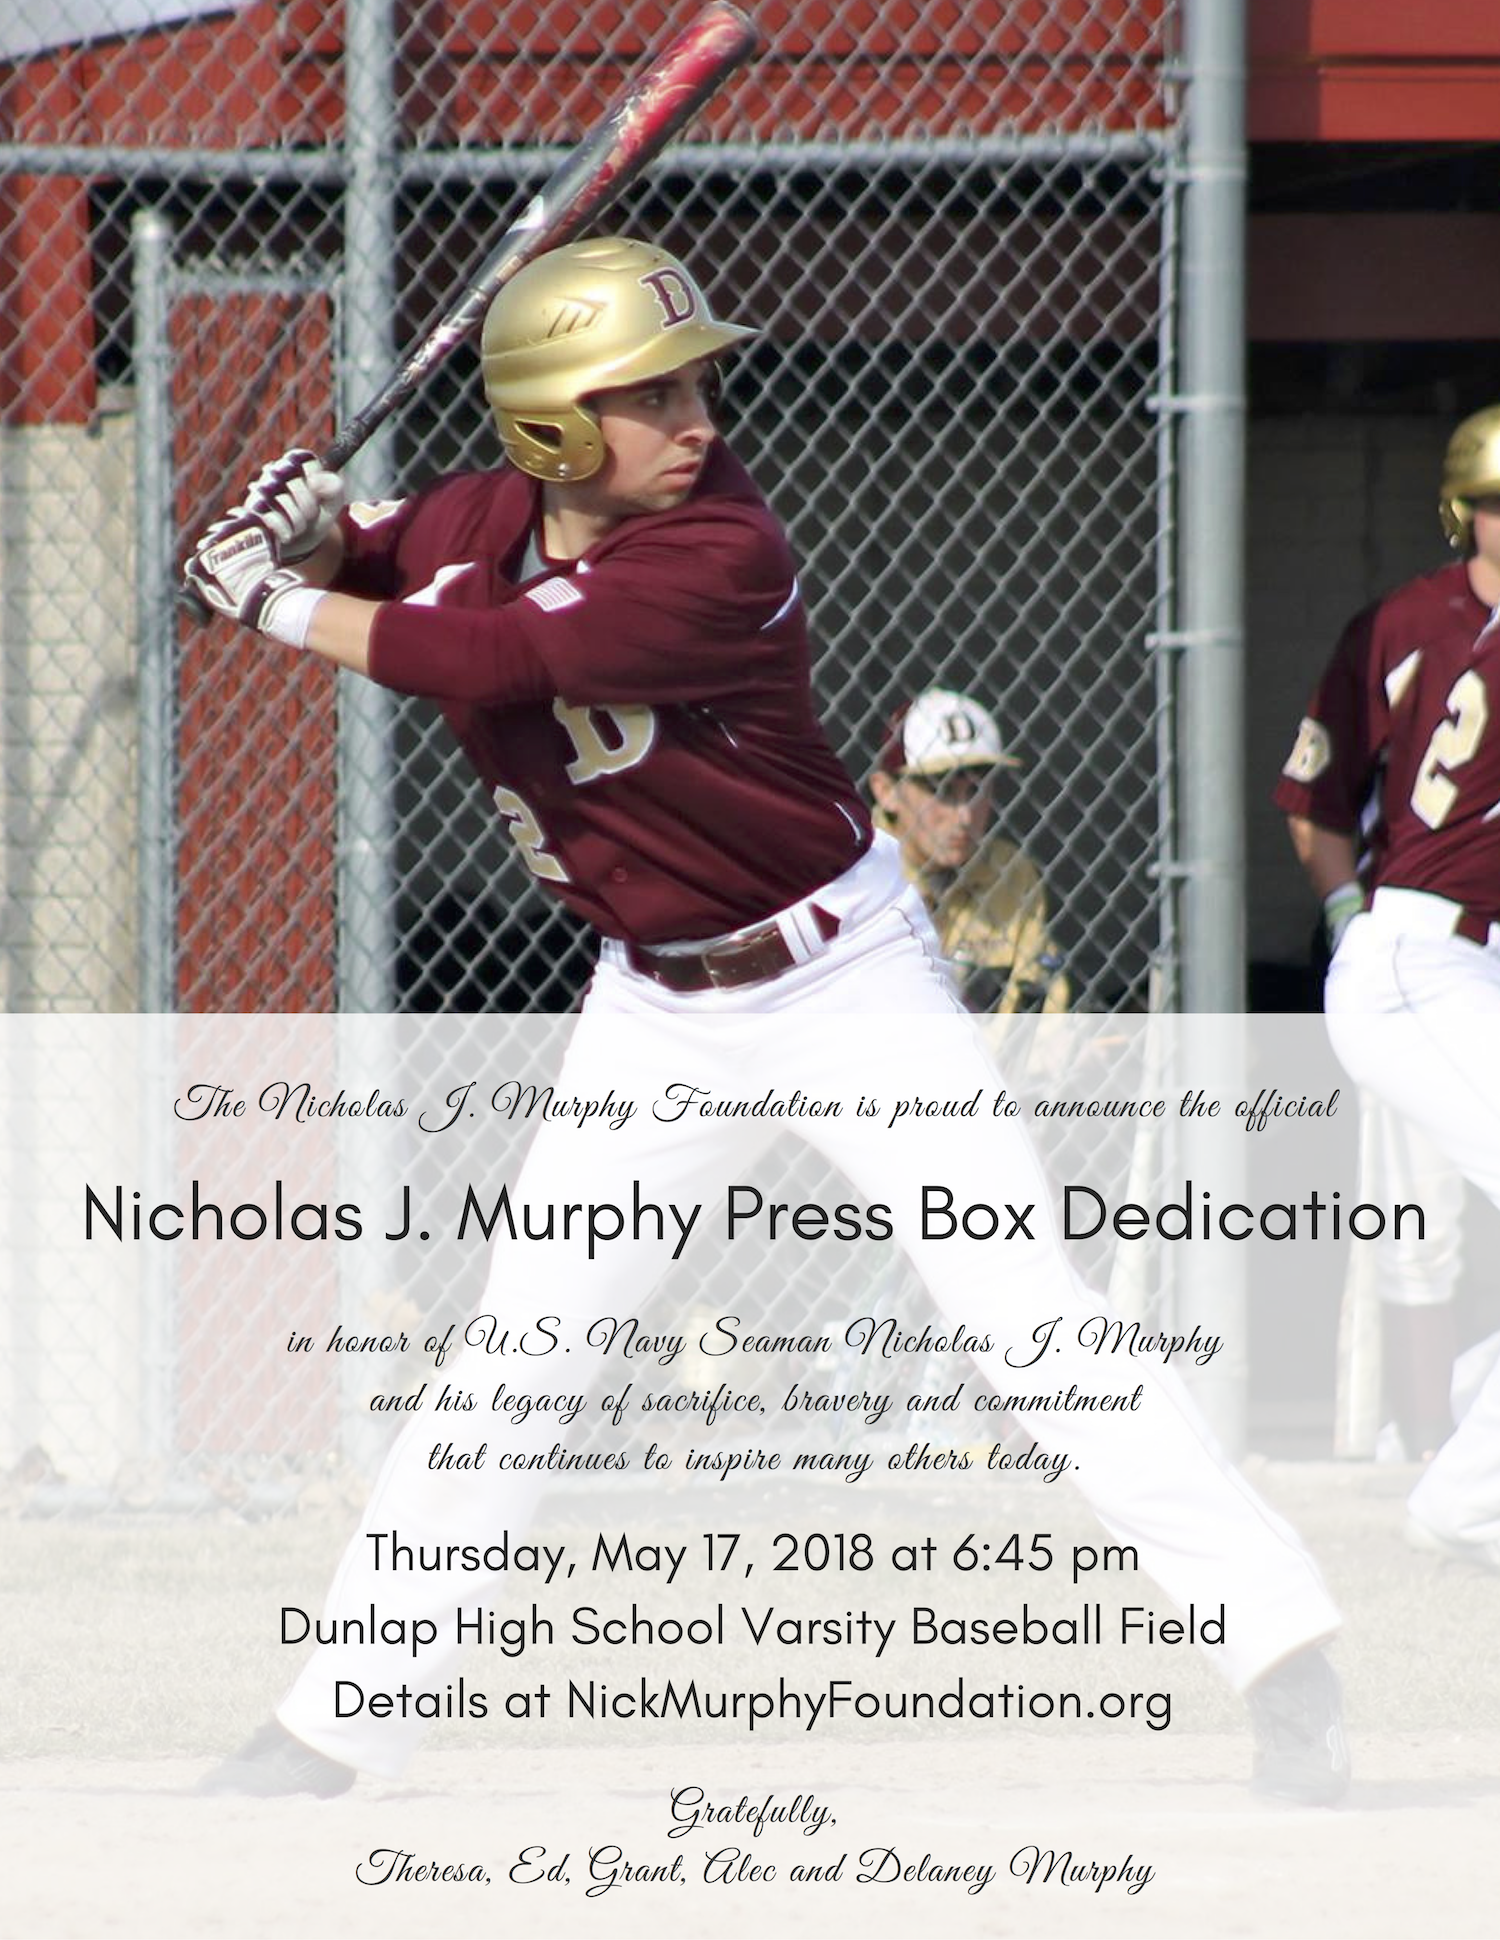 DEDICATION CEREMONY - THE DEDICATION CEREMONY HAS BEEN RESCHEDULED TO MAY 17, 2018 AT 6:45 PM, right before the Dunlap v. IVC baseball game. It will be a special night since May 17th would have been Nick's 21st birthday. Thank you so much for all of your support!